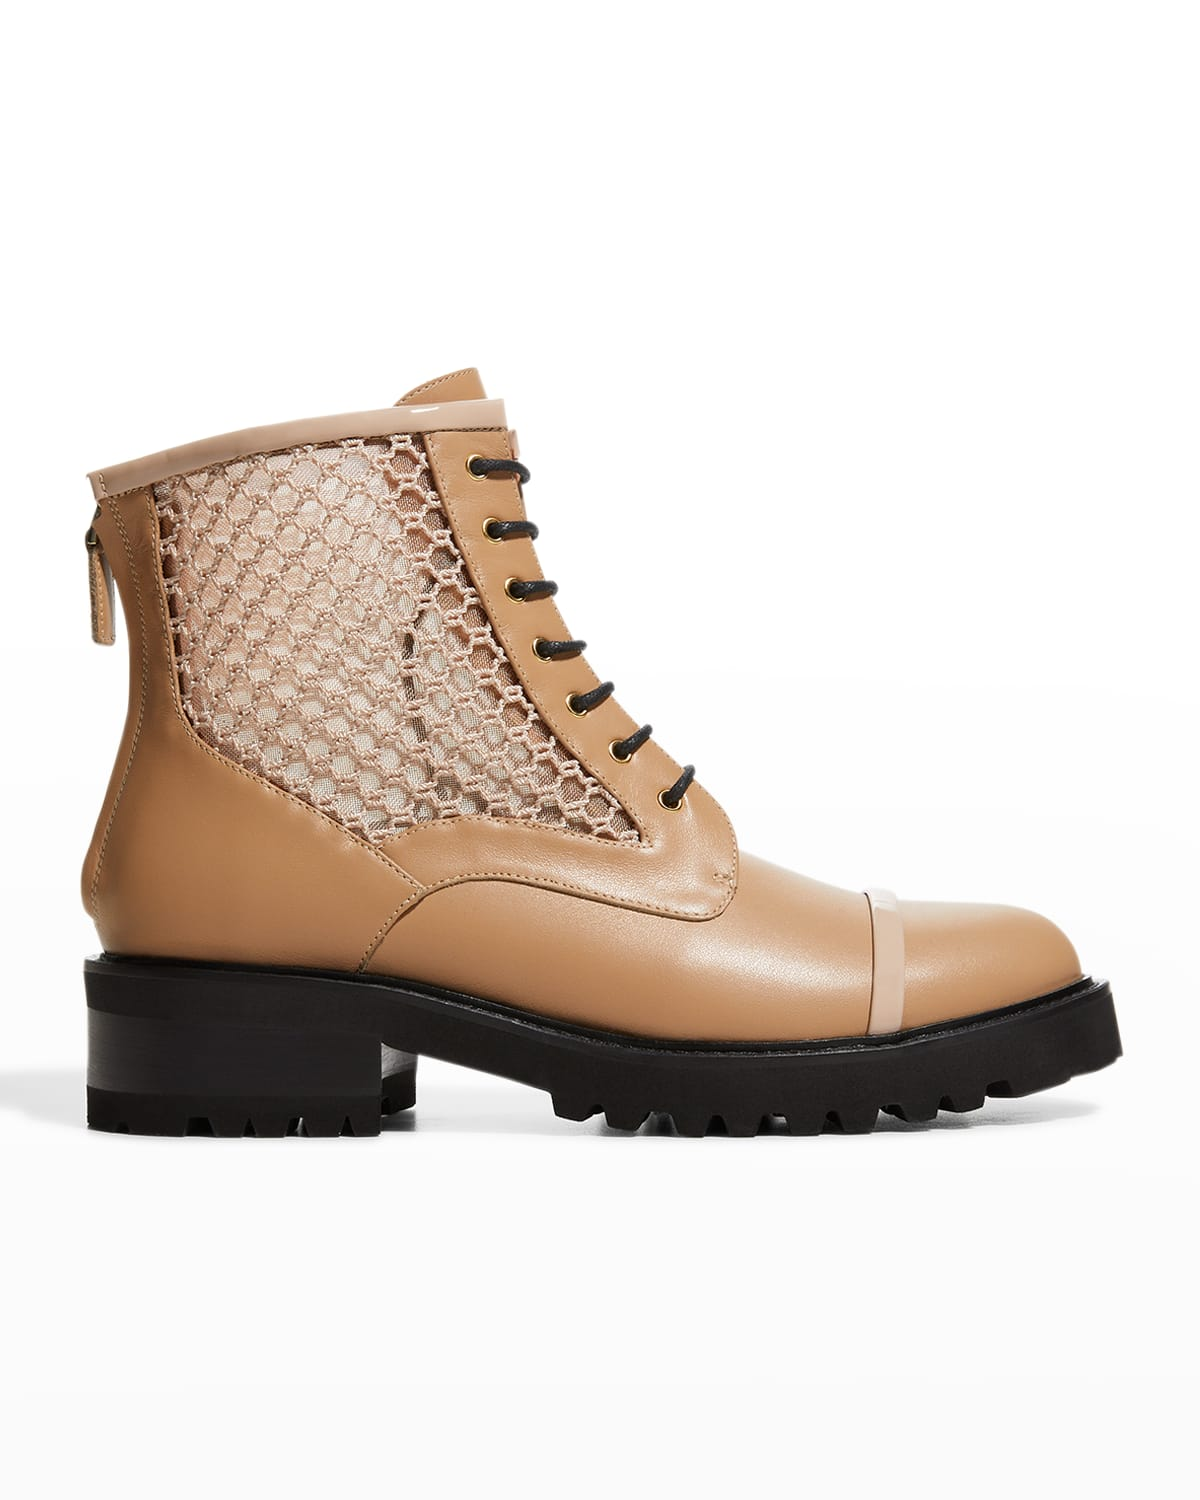 Bryce 11 Lace-Up Booties